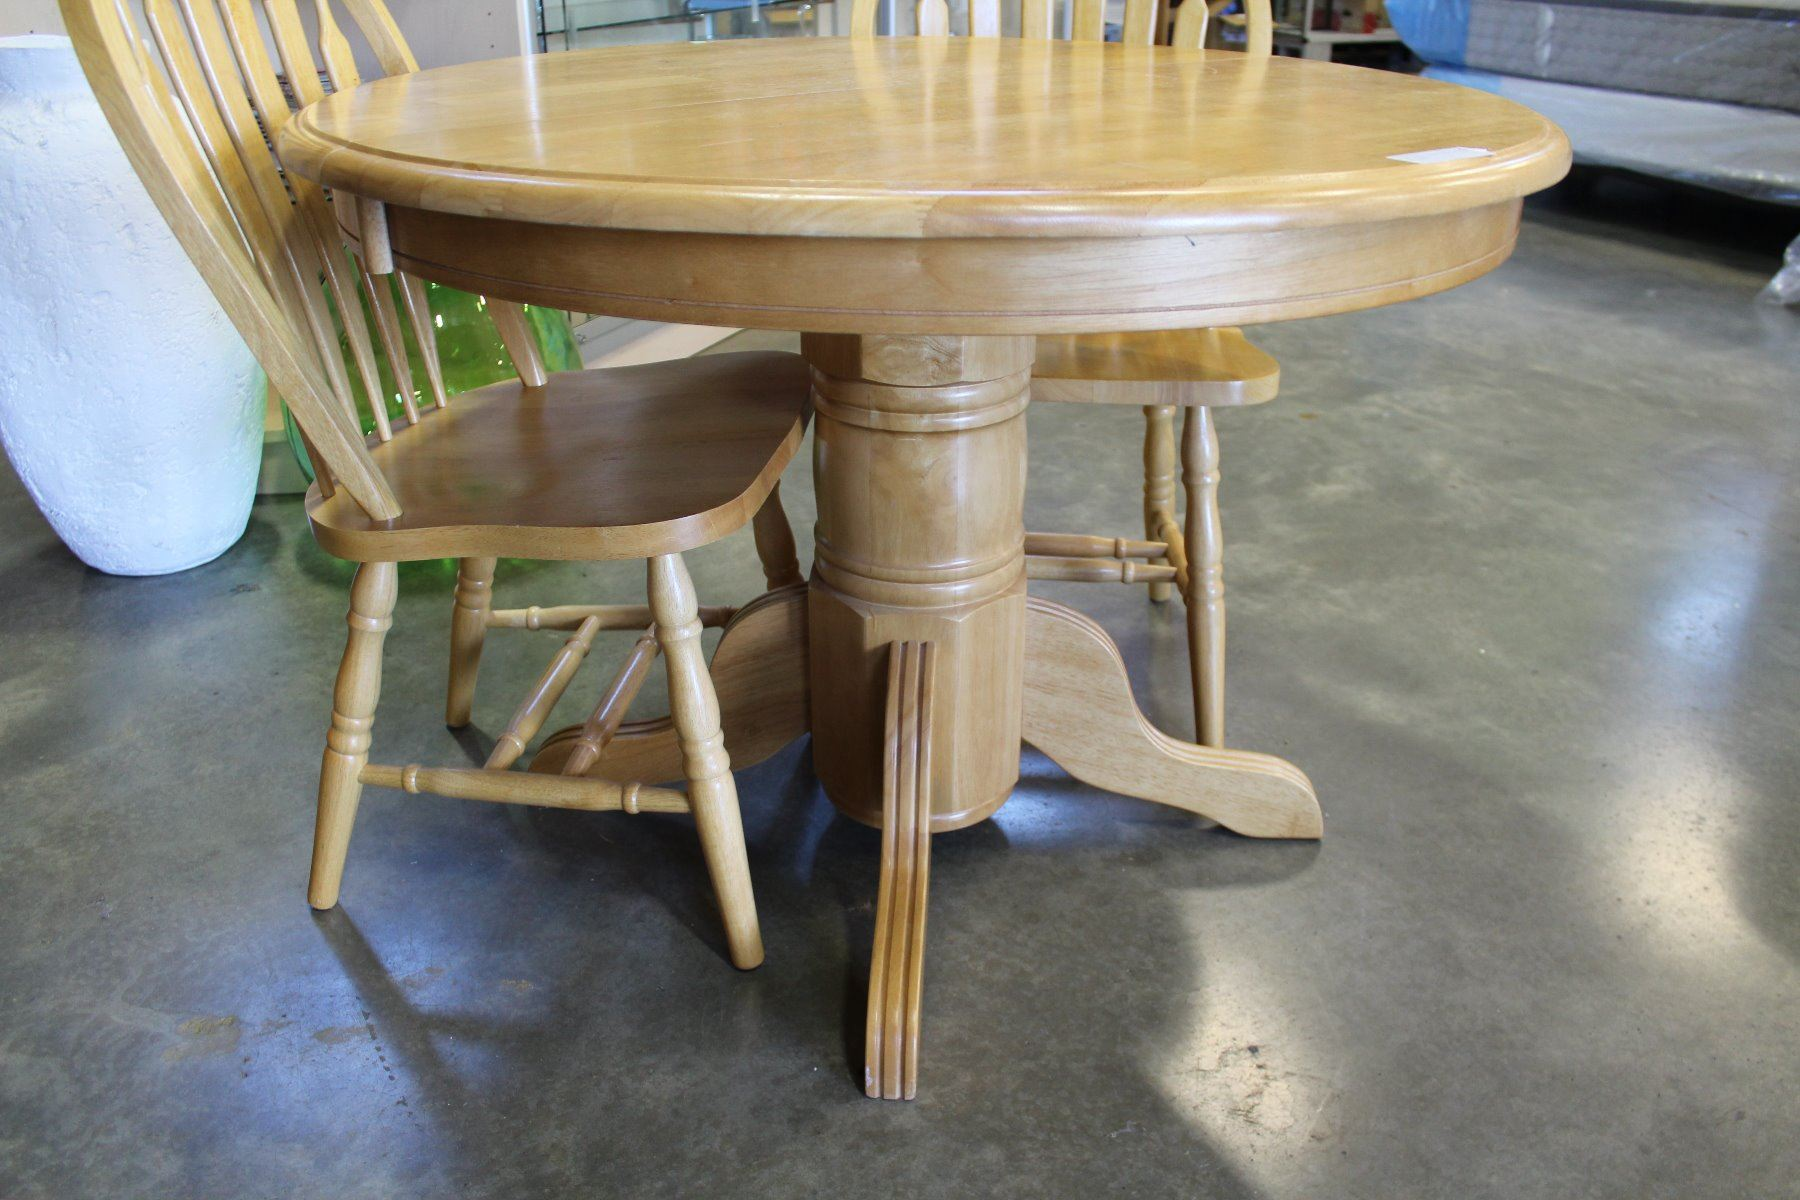 maple kitchen table mega system round dining with two chairs big valley auction image 2